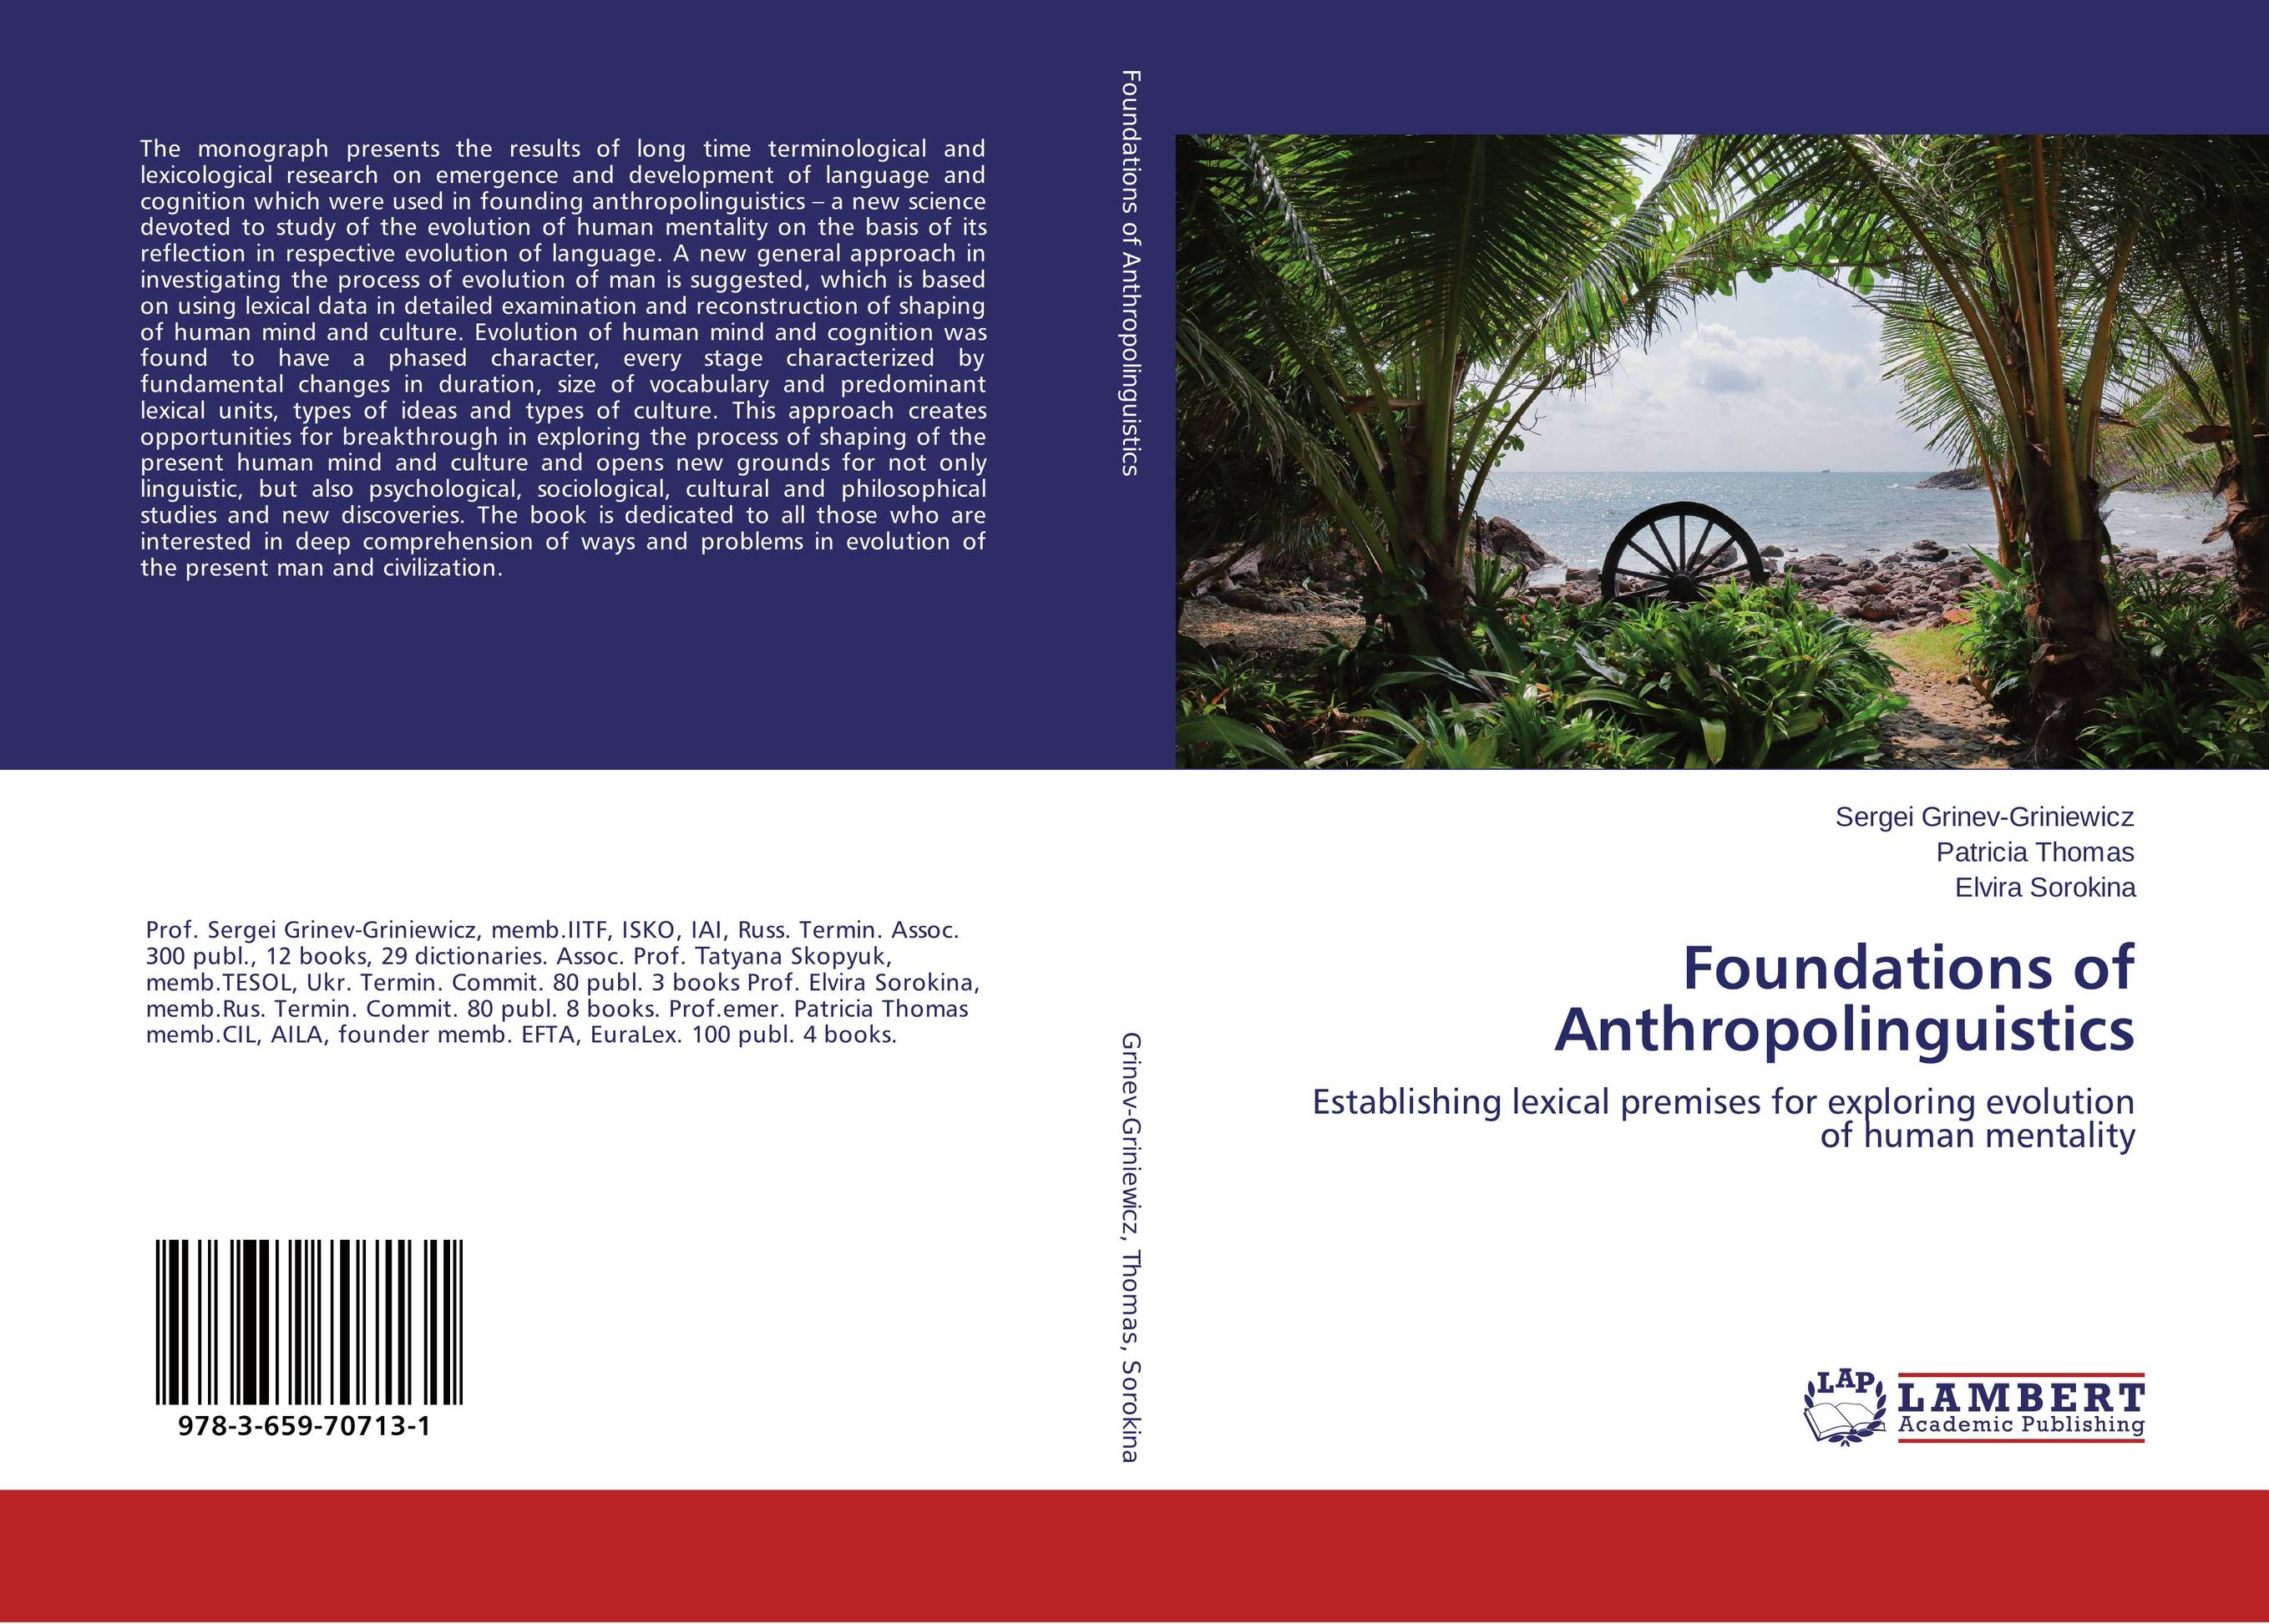 Foundations of Anthropolinguistics